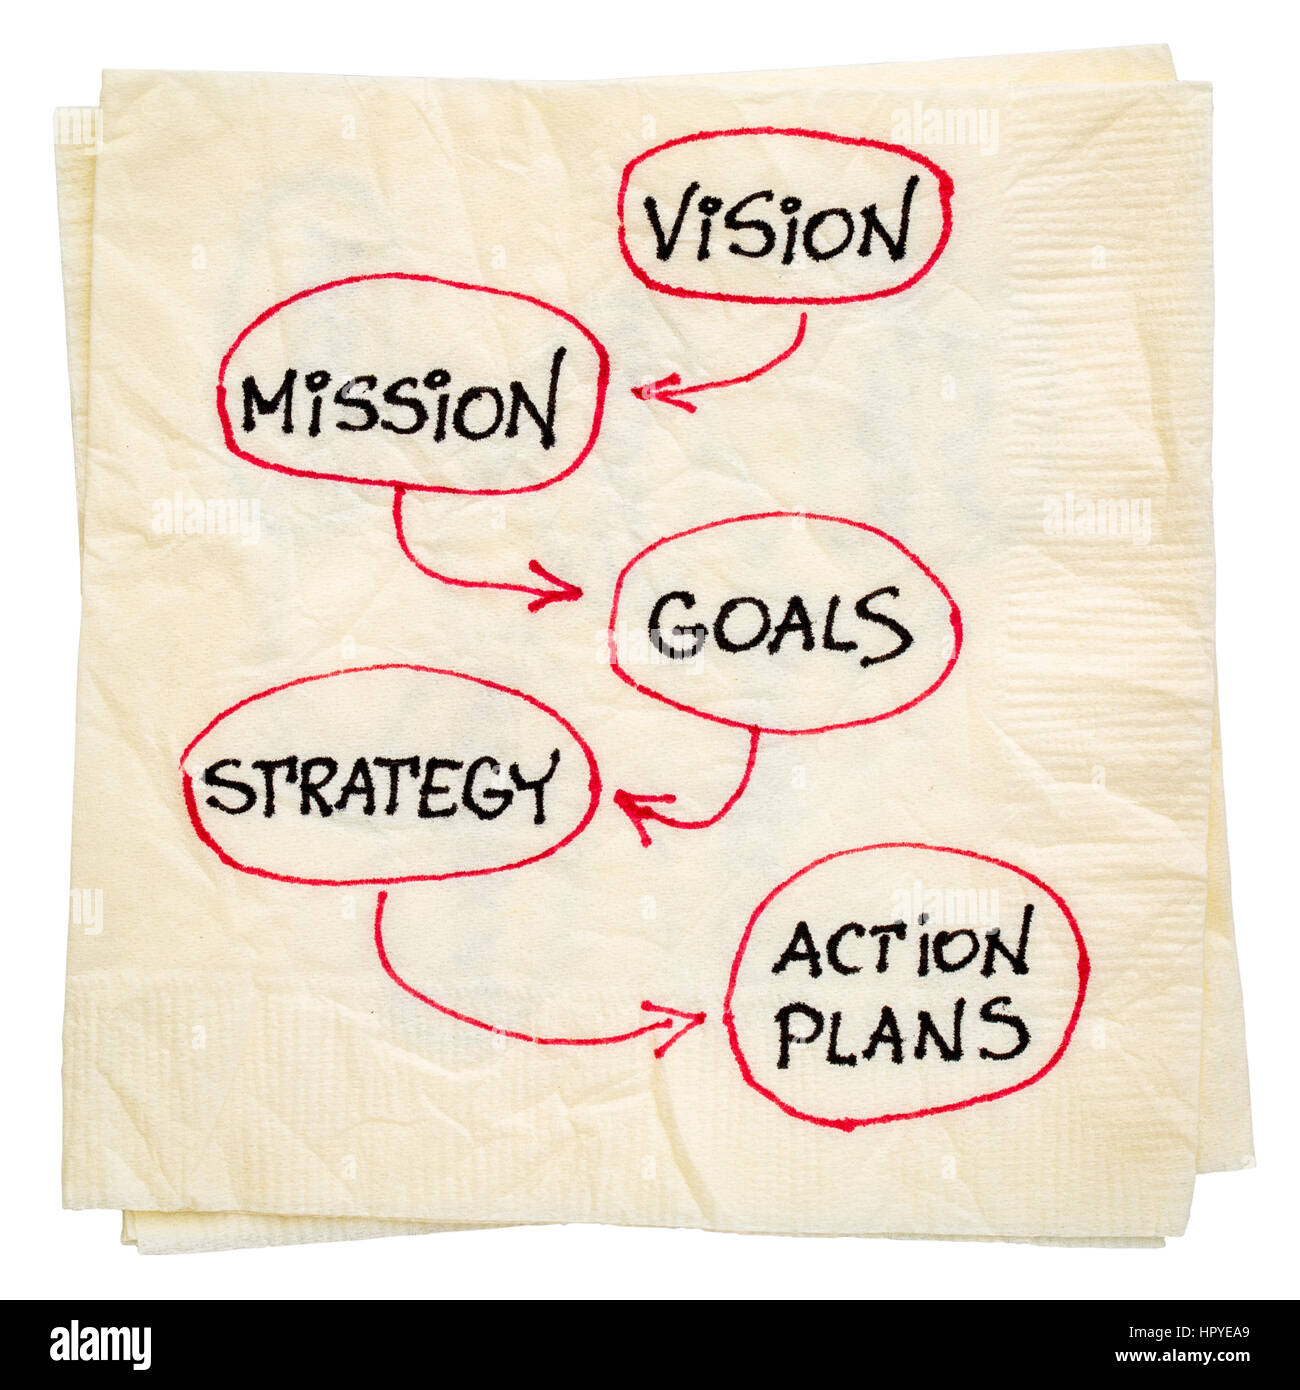 Vision Mission Goals Strategy And Action Plans